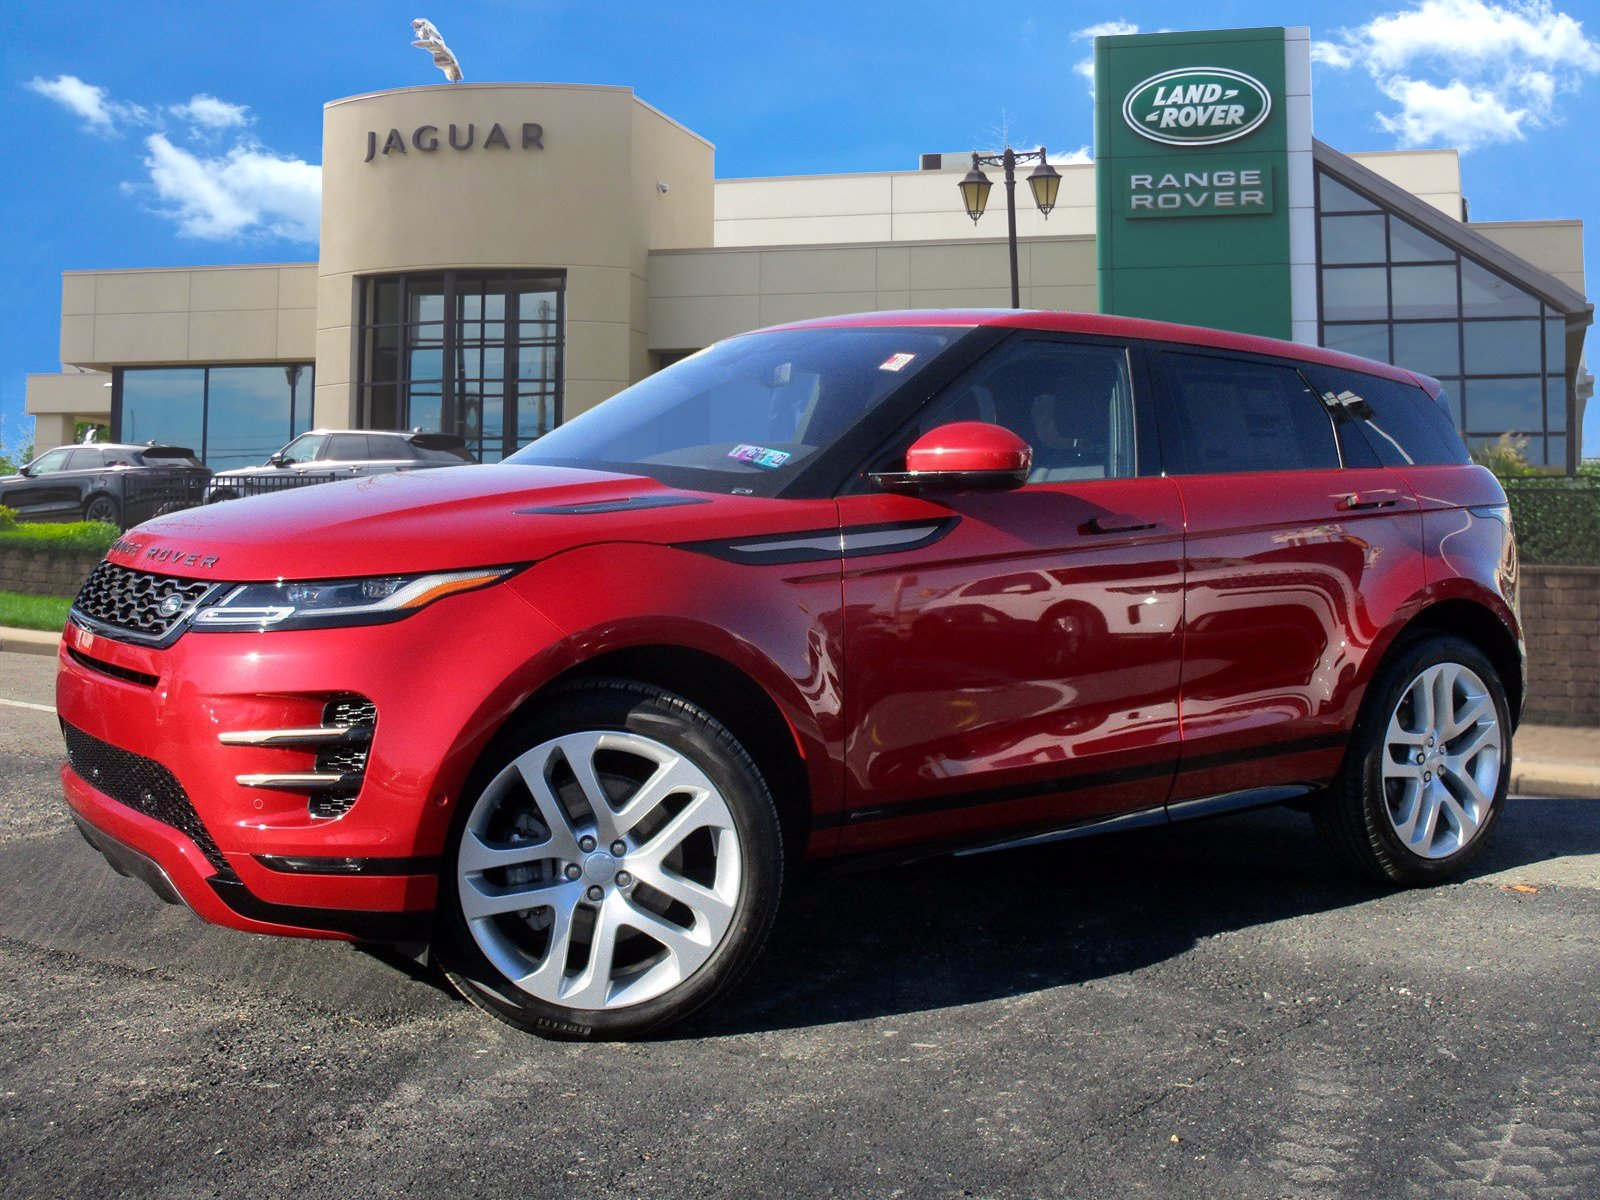 2020 Land Rover Range Rover Evoque SE With Navigation & AWD